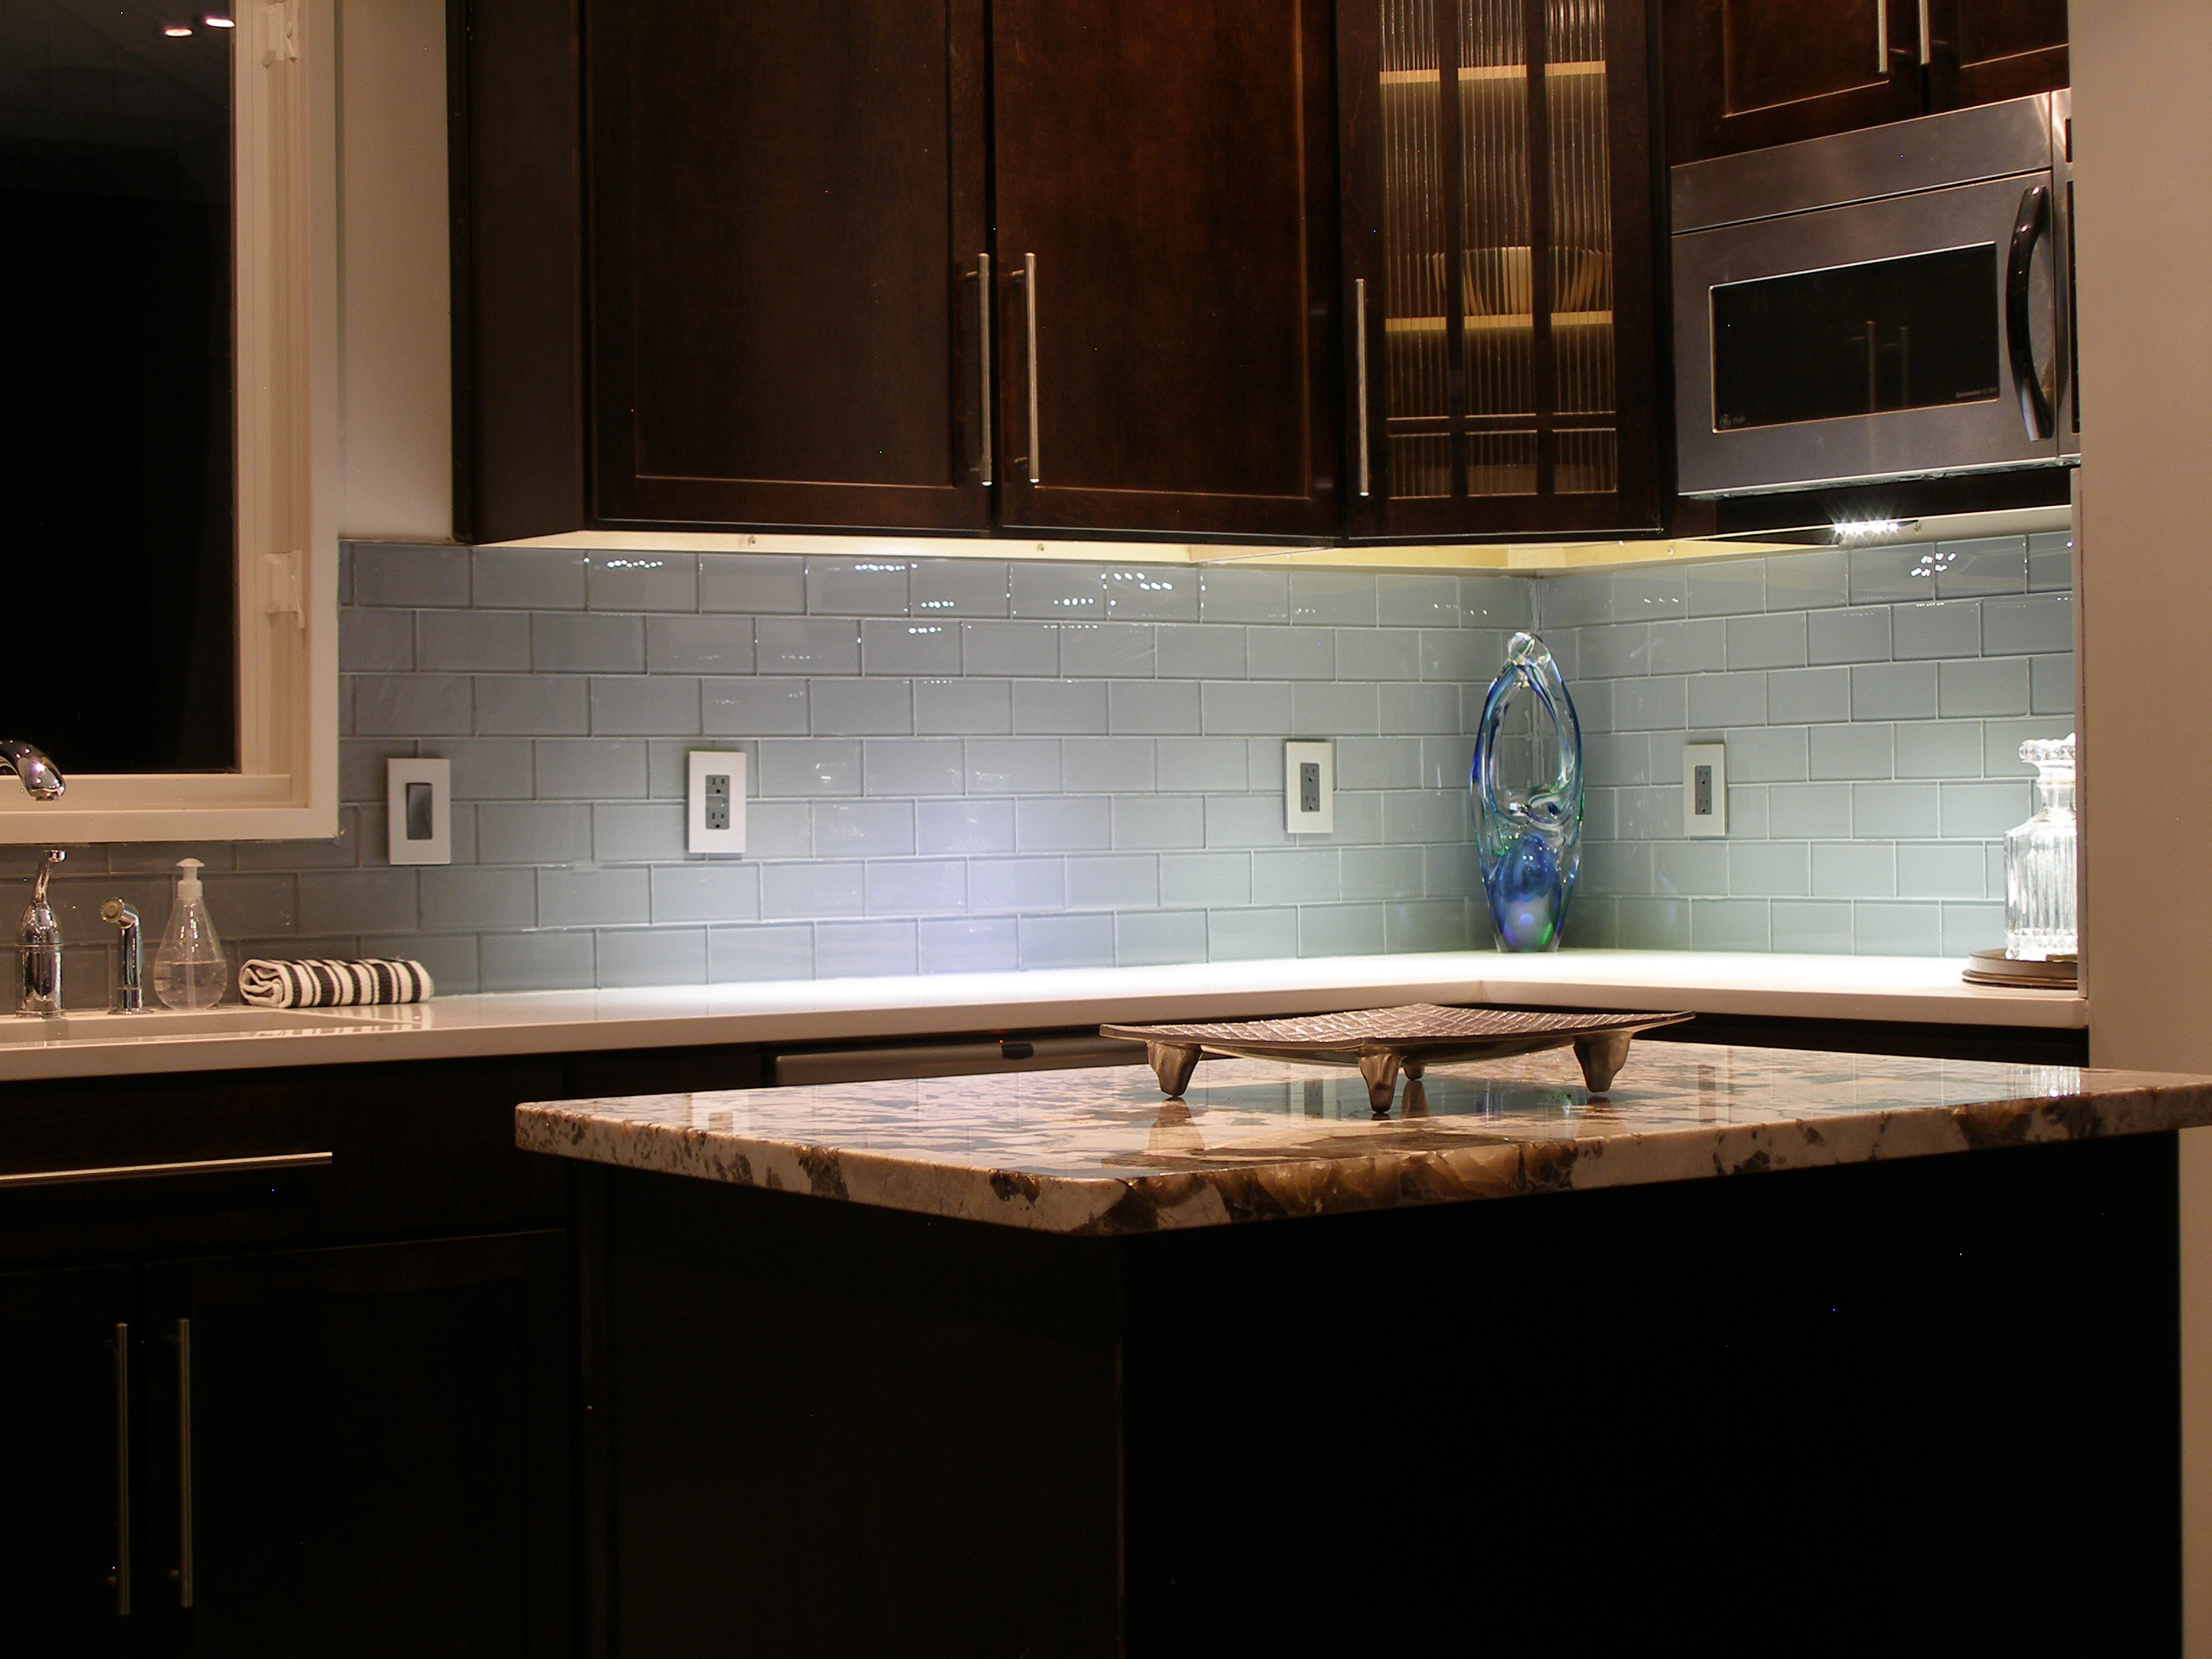 Trending Vapor Glass Subway Tile. Backsplash IdeasTile ... glass tile kitchen backsplash